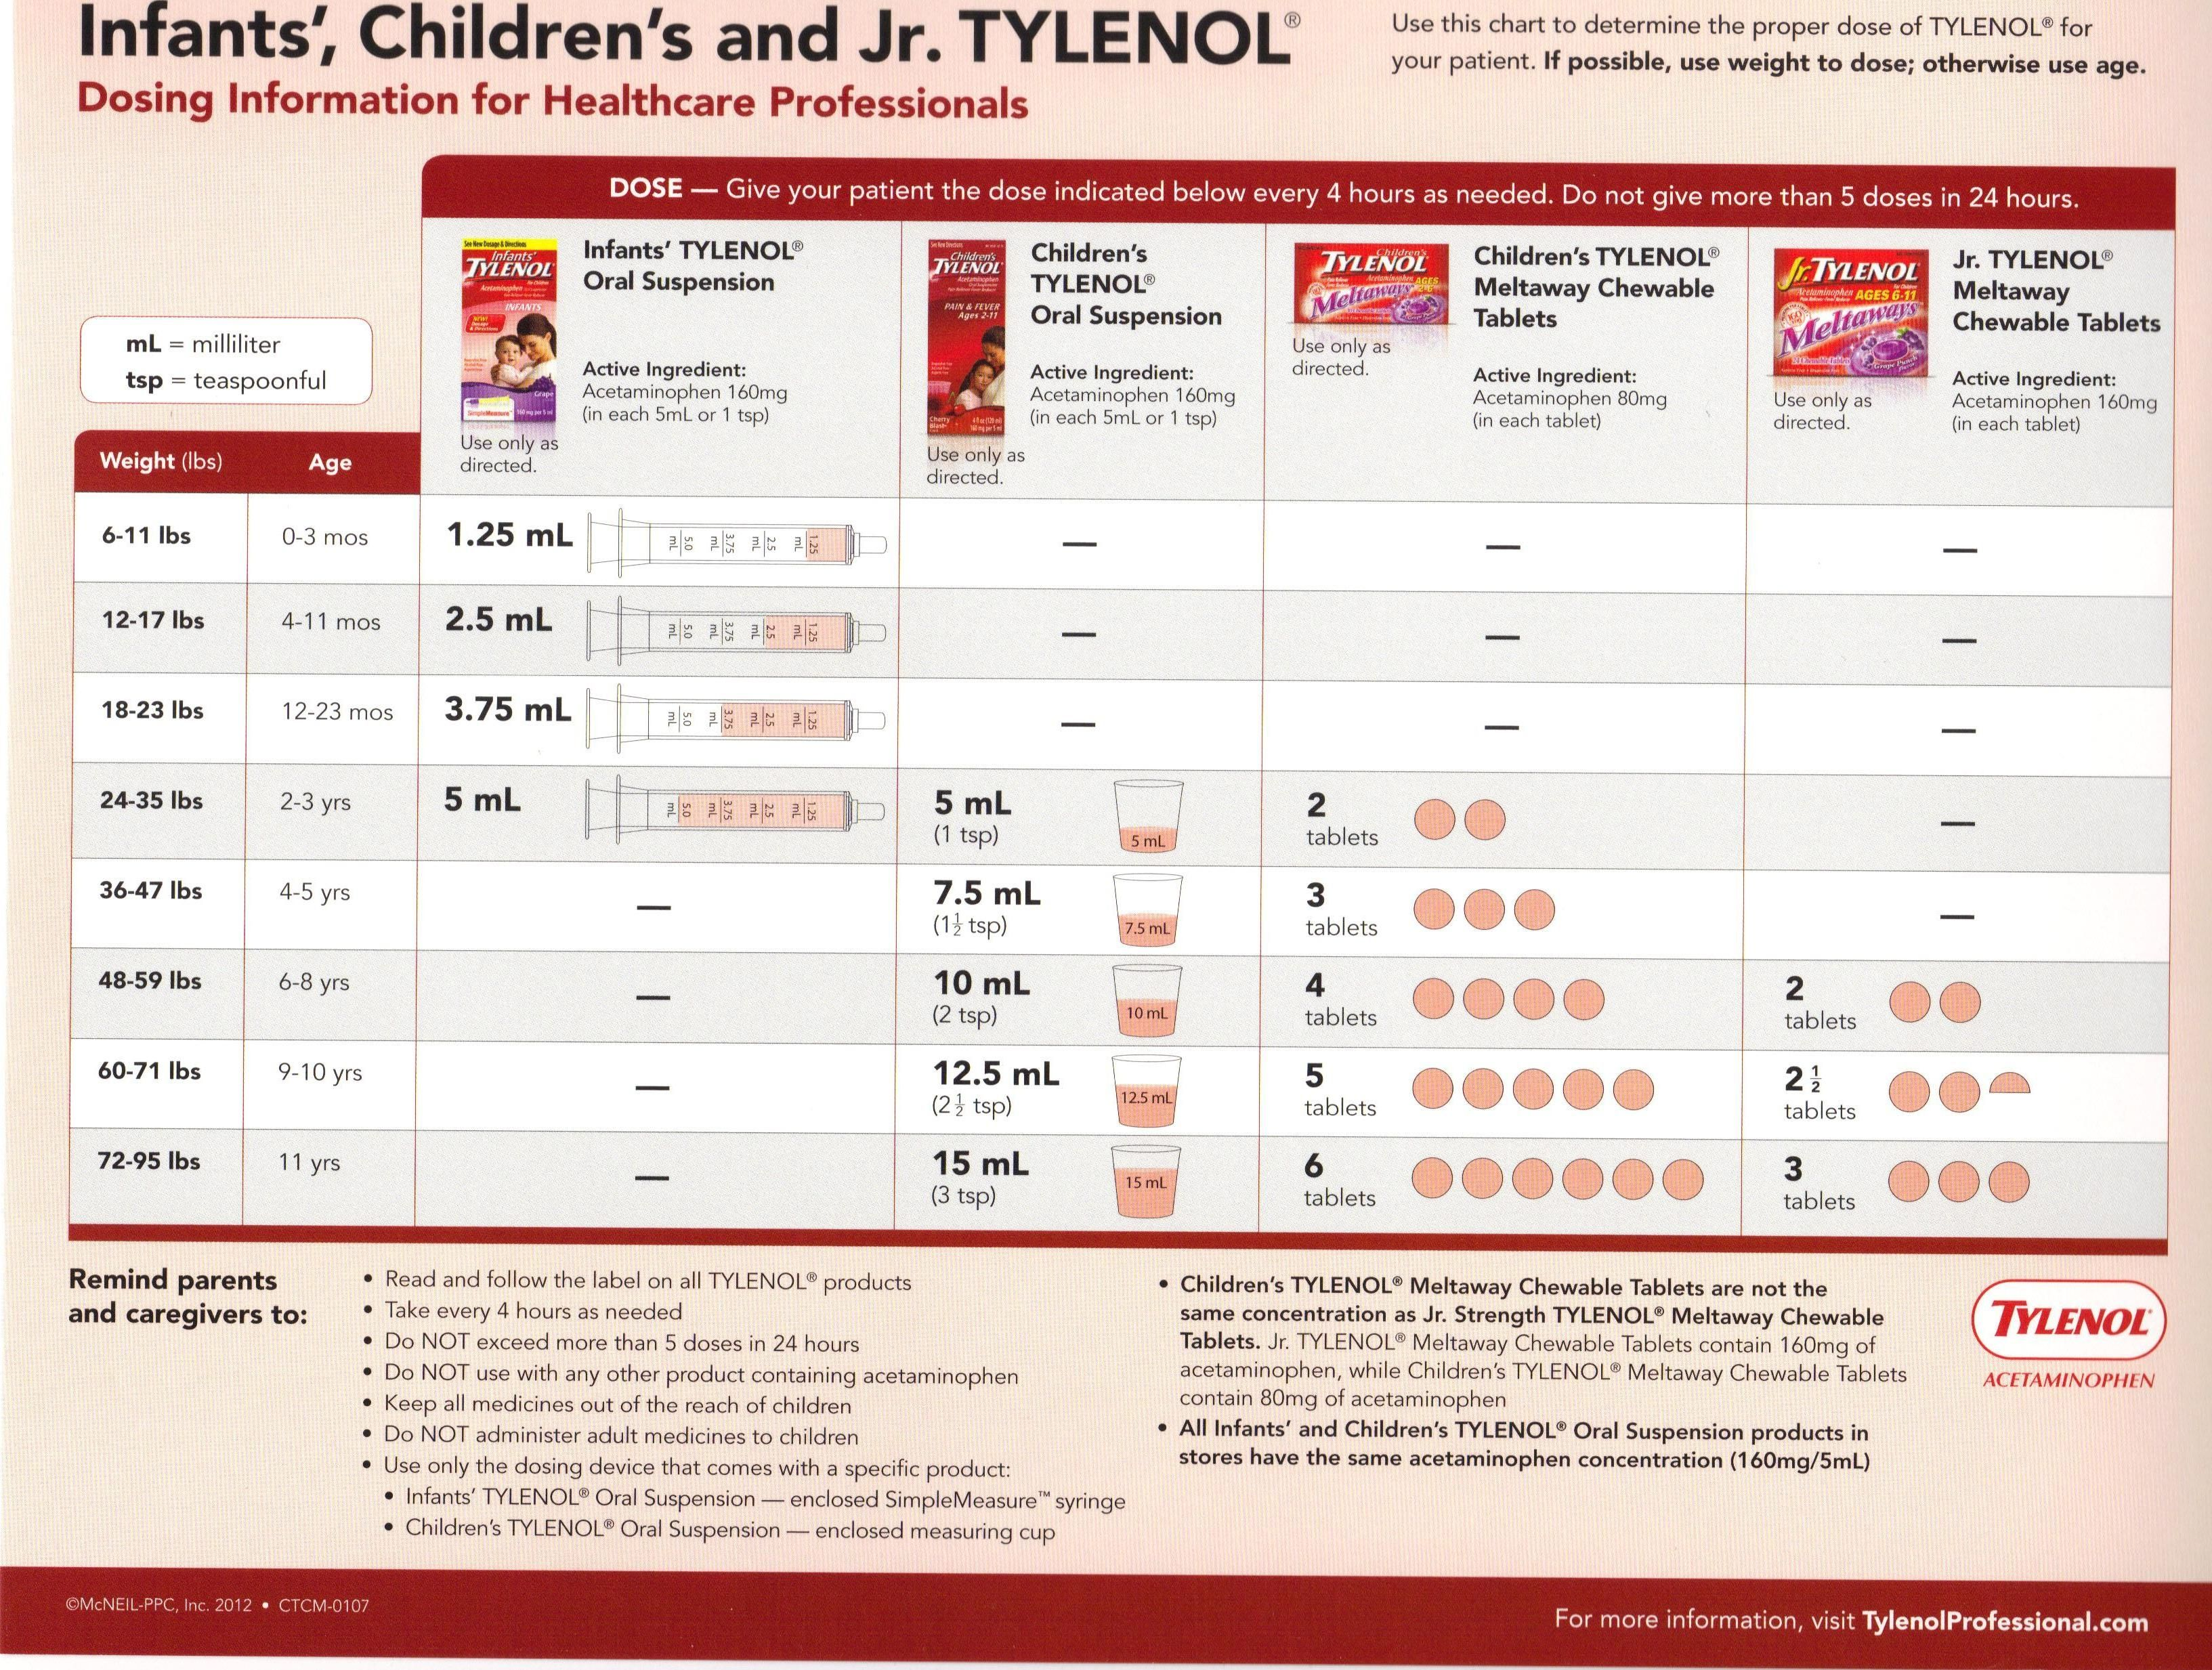 Infant tylenol dosing chart use this to determine the proper dose of acetaminophen also rh pinterest